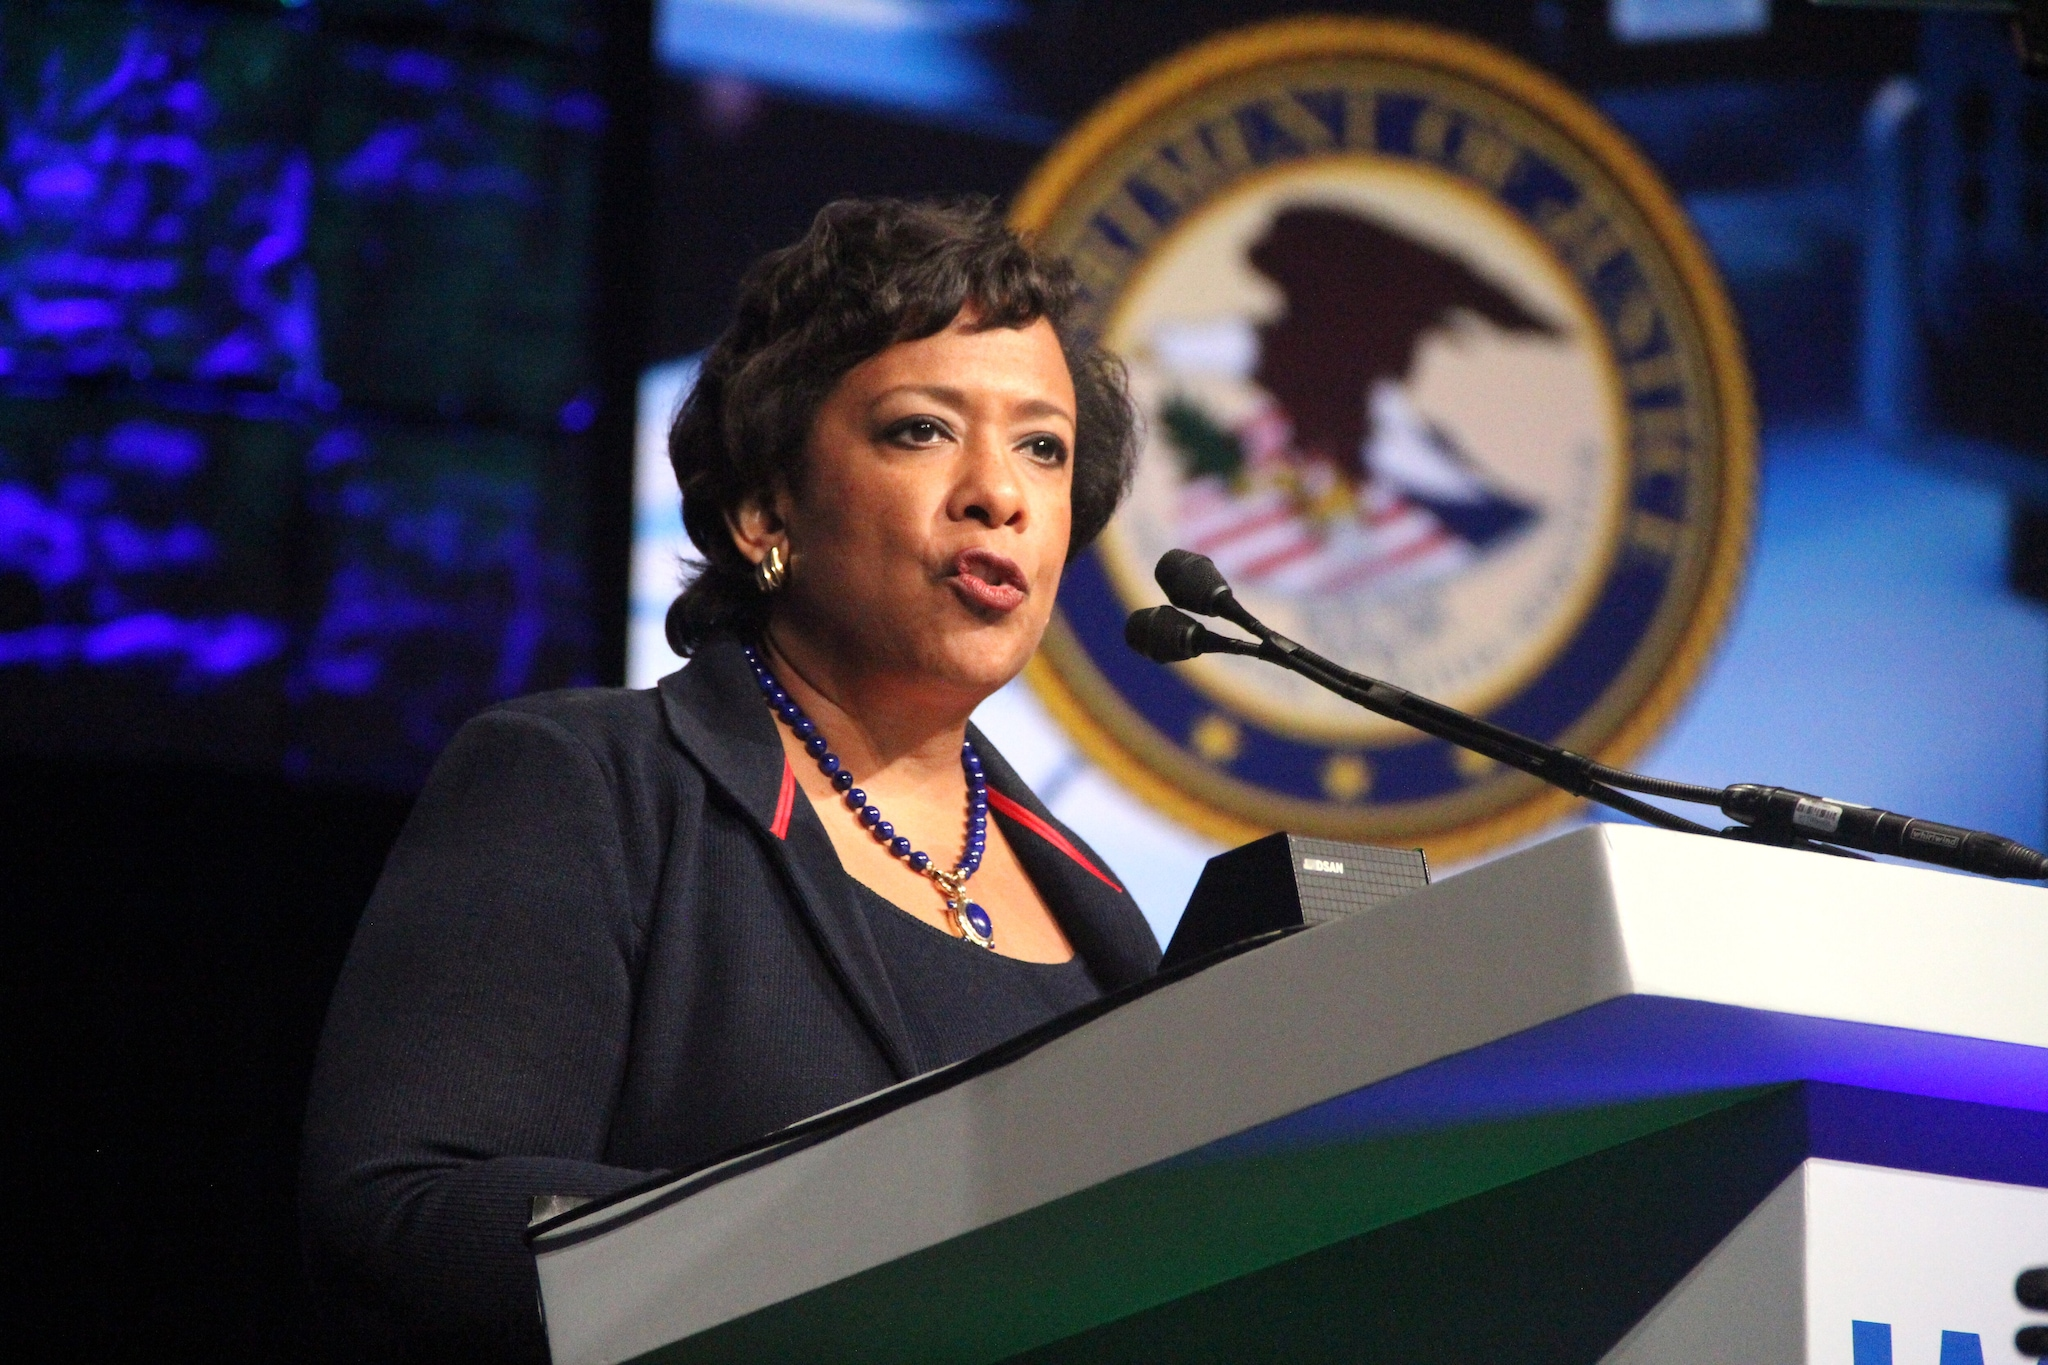 U.S. Attorney General Loretta Lynch announces the launch of a Department of Justice mental health toolkit to offer police resources in crisis management during calls involving the mentally ill. Her remarks came during the annual convention of the International Association of Chiefs of Police in San Diego on Monday, Oct. 17, 2016. (Photo: Jared Morgan)